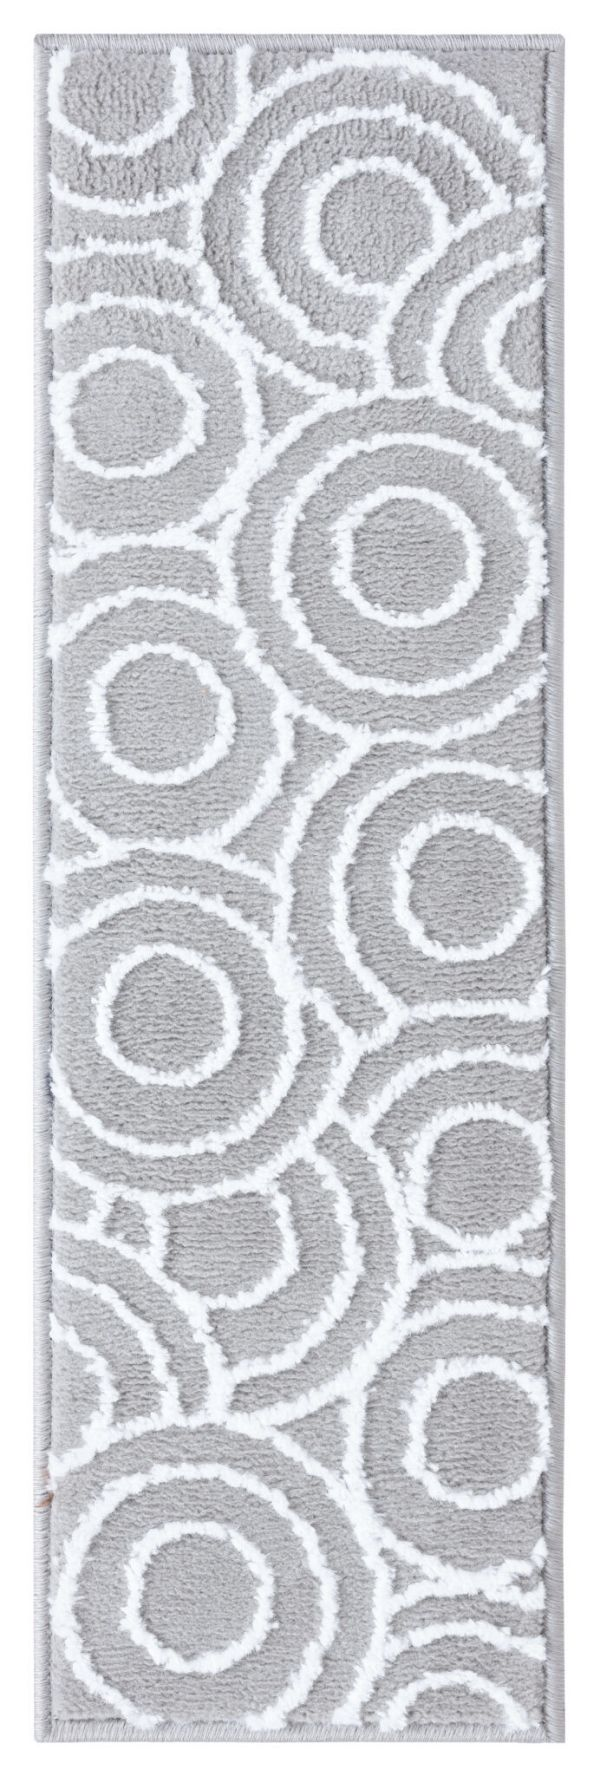 Beverly Rug Soft Rug Stair Treads Circles Design - White